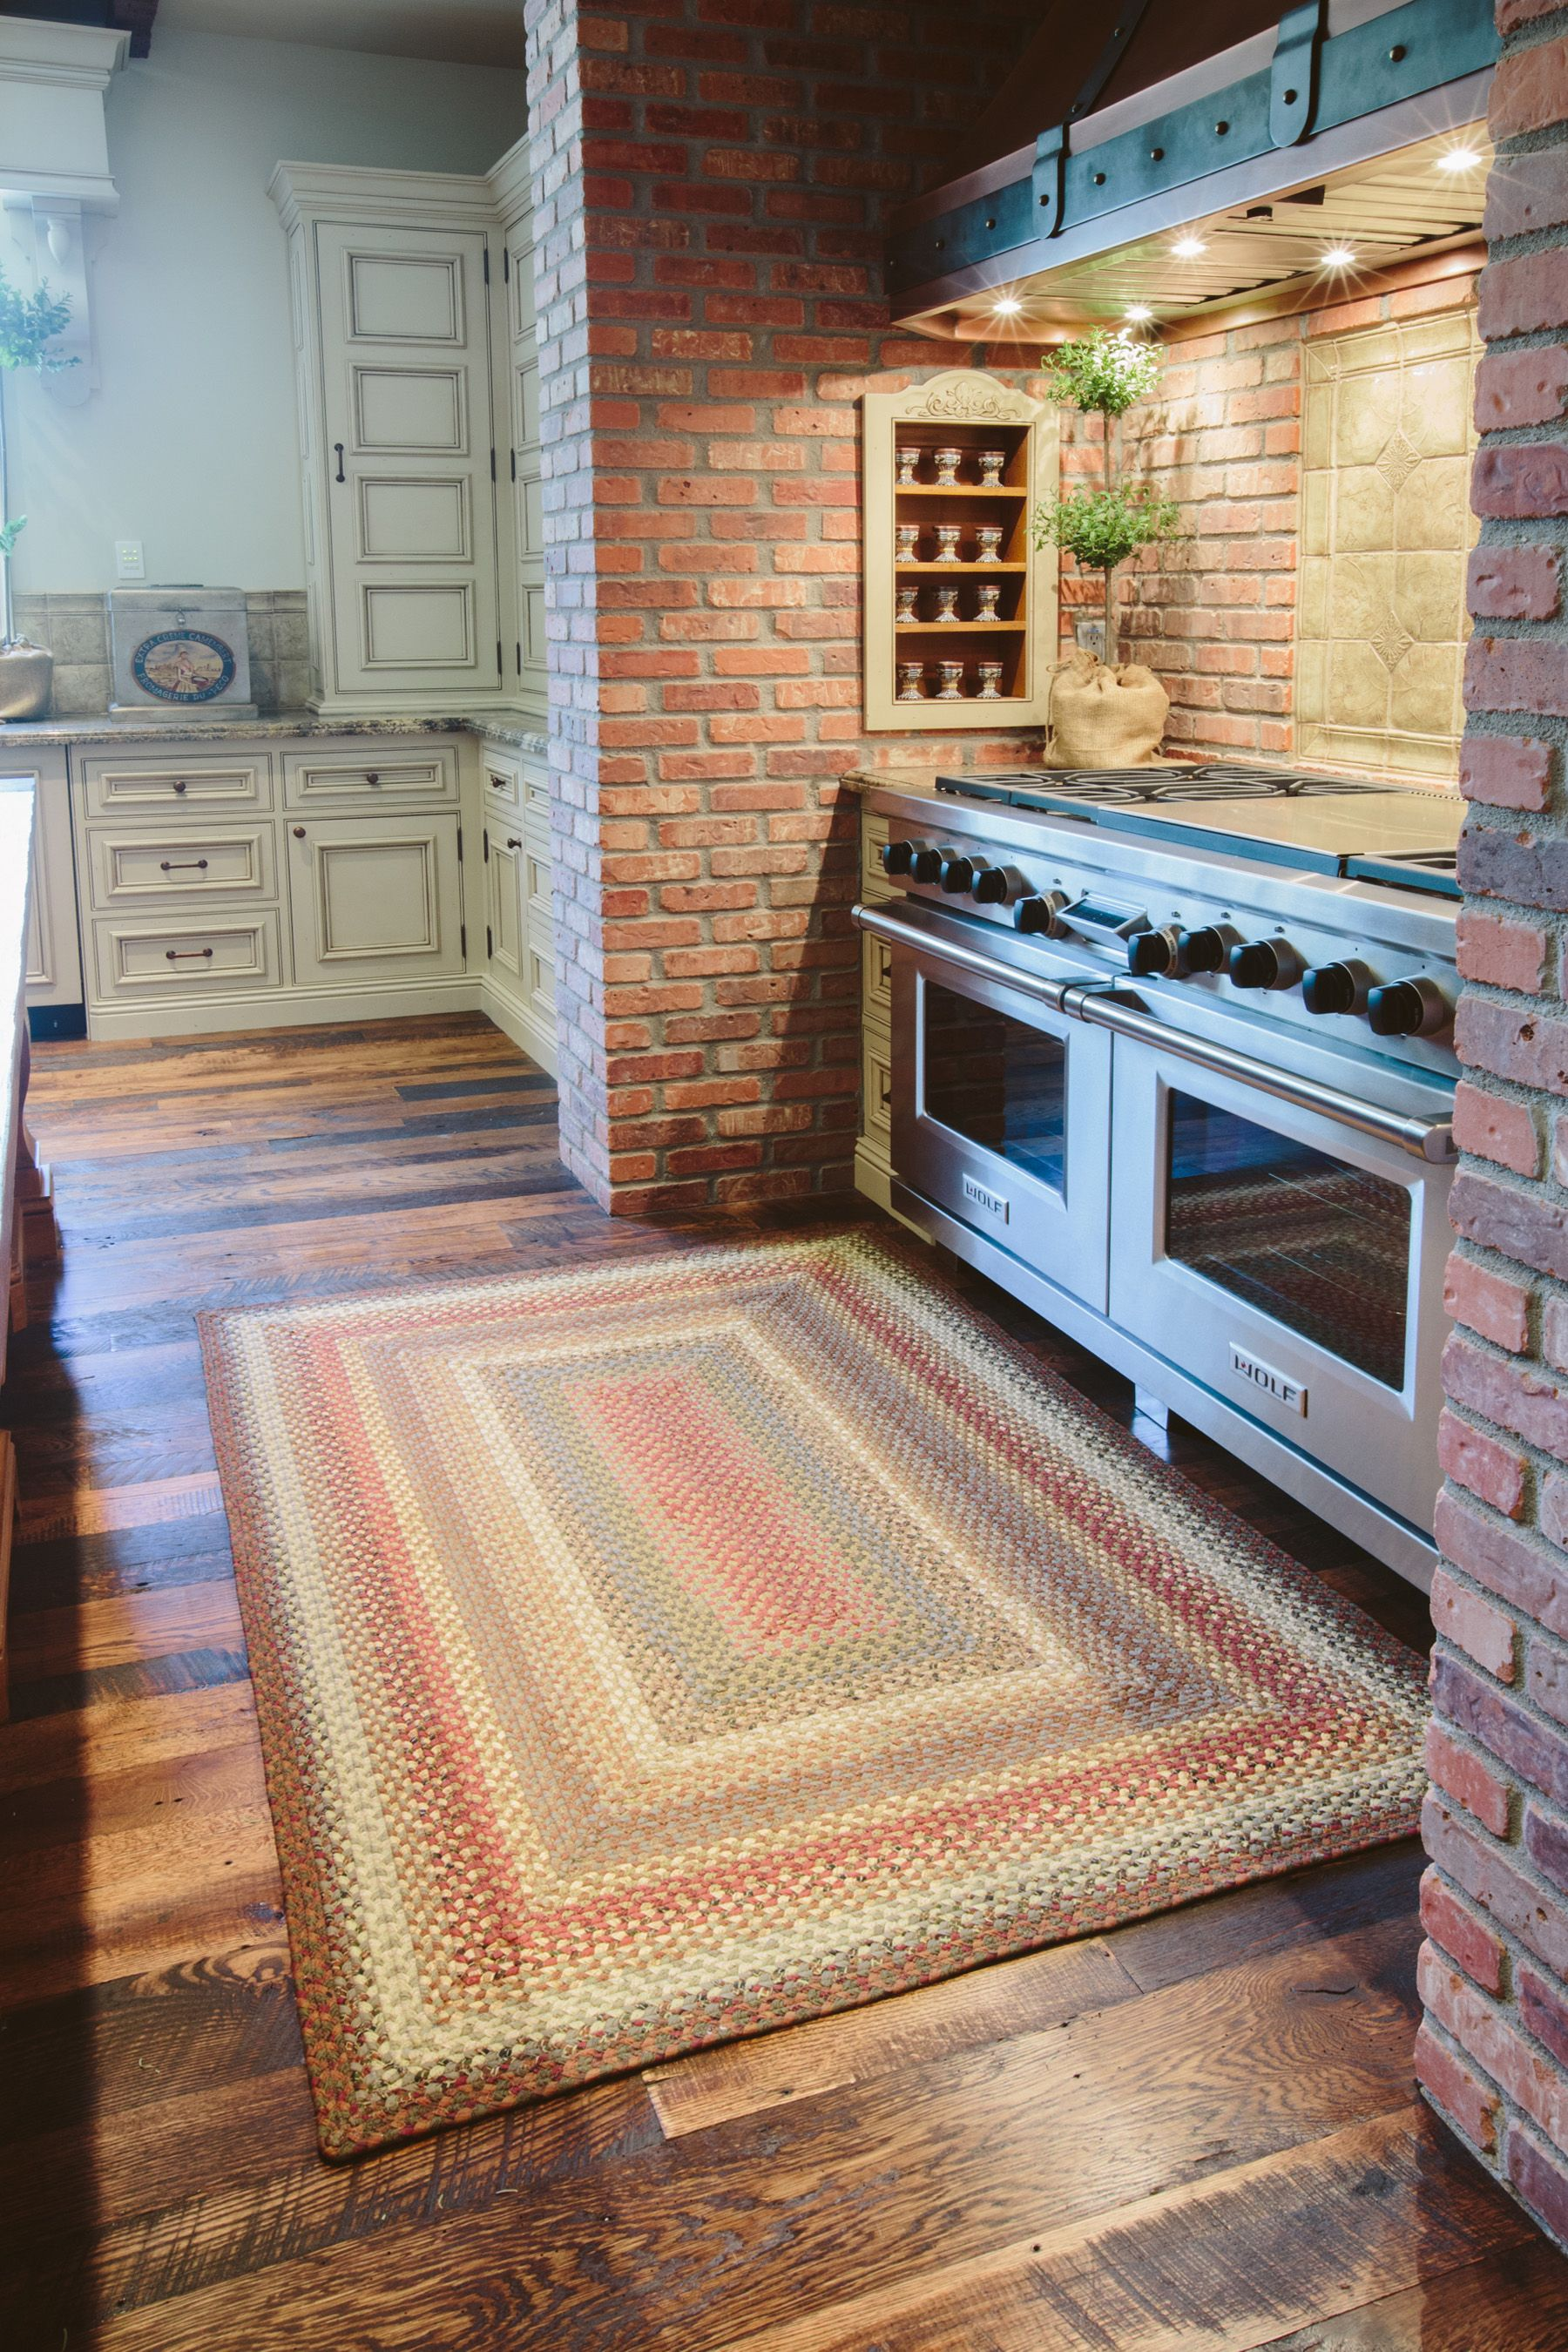 Eclectic Kitchen With Brick Cooking Area The Walls And Wood Floors Look Primitive